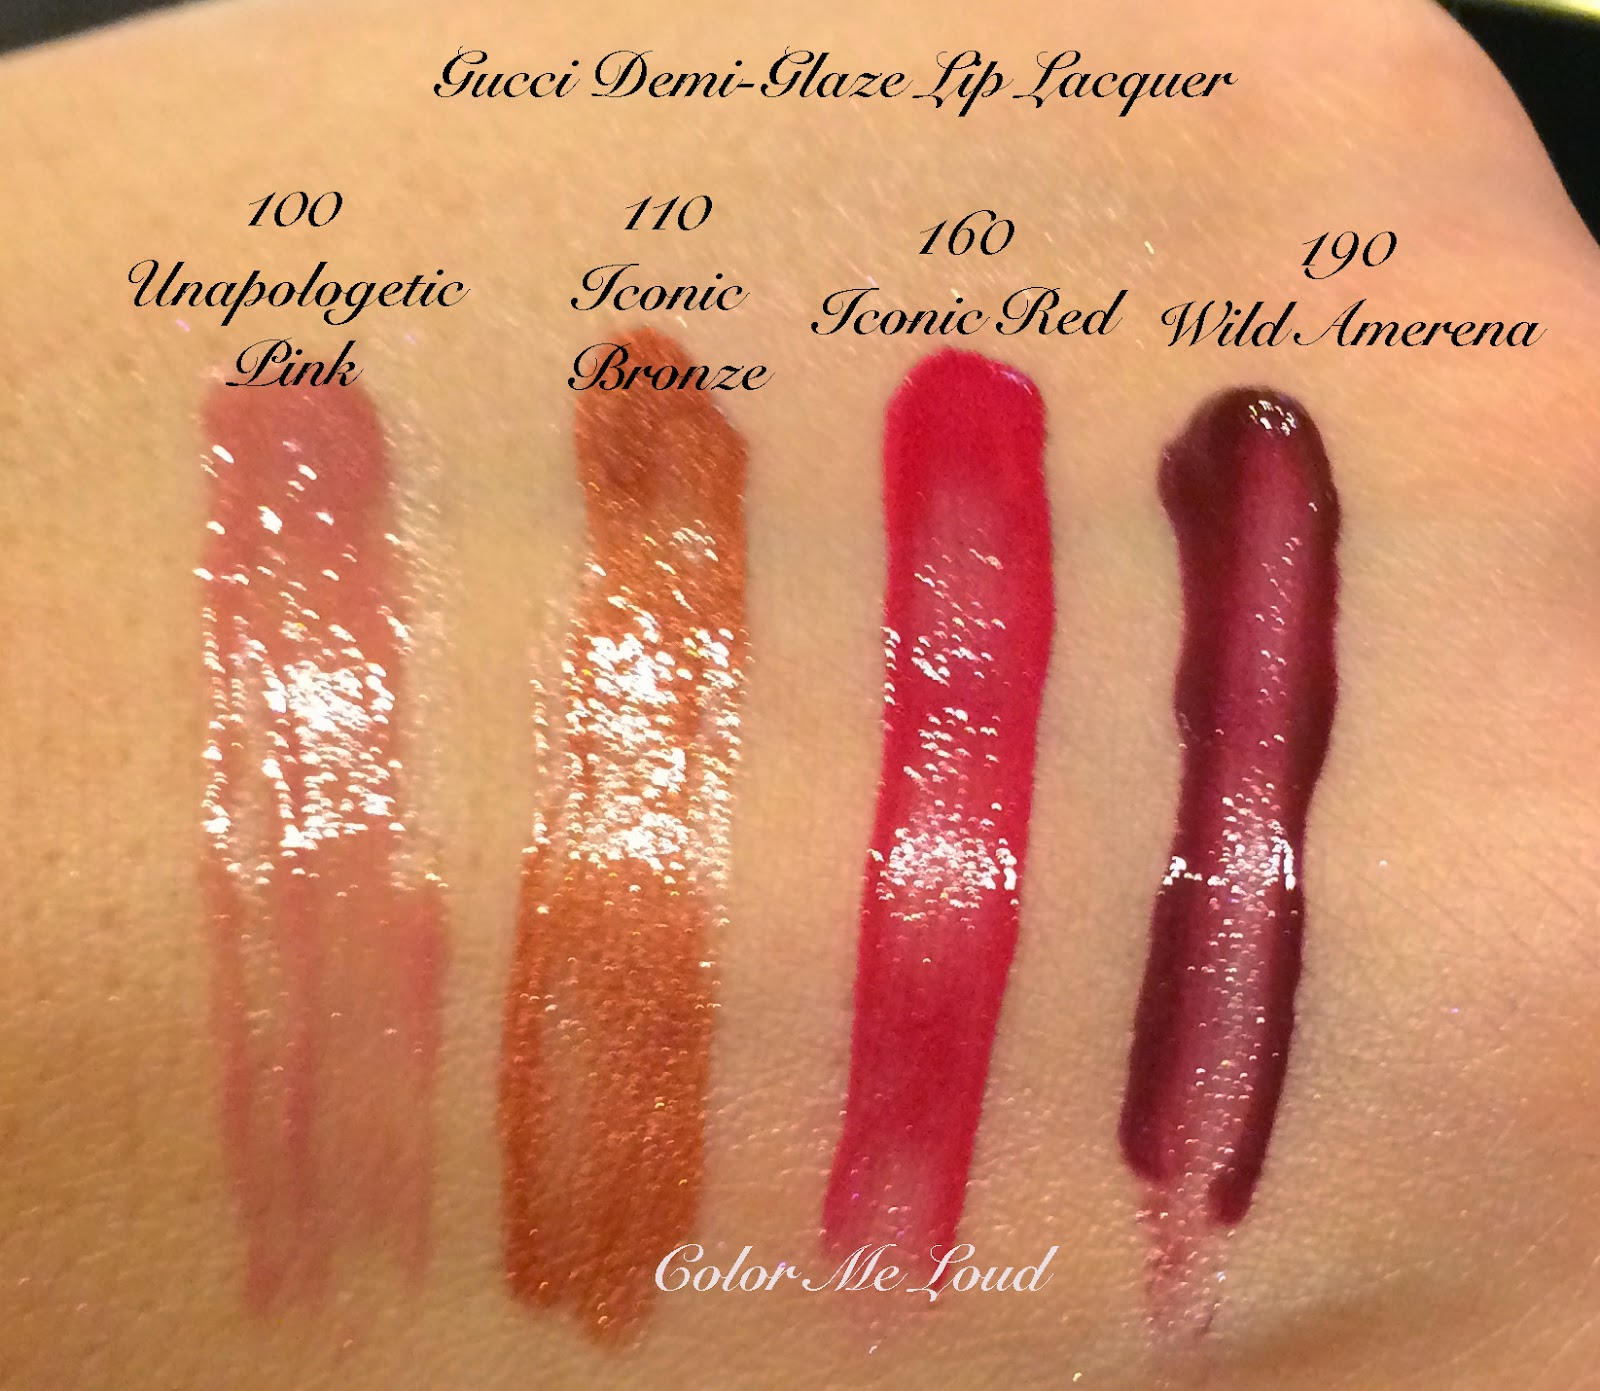 Gucci Demi-Glaze Lip Lacquer Swatches